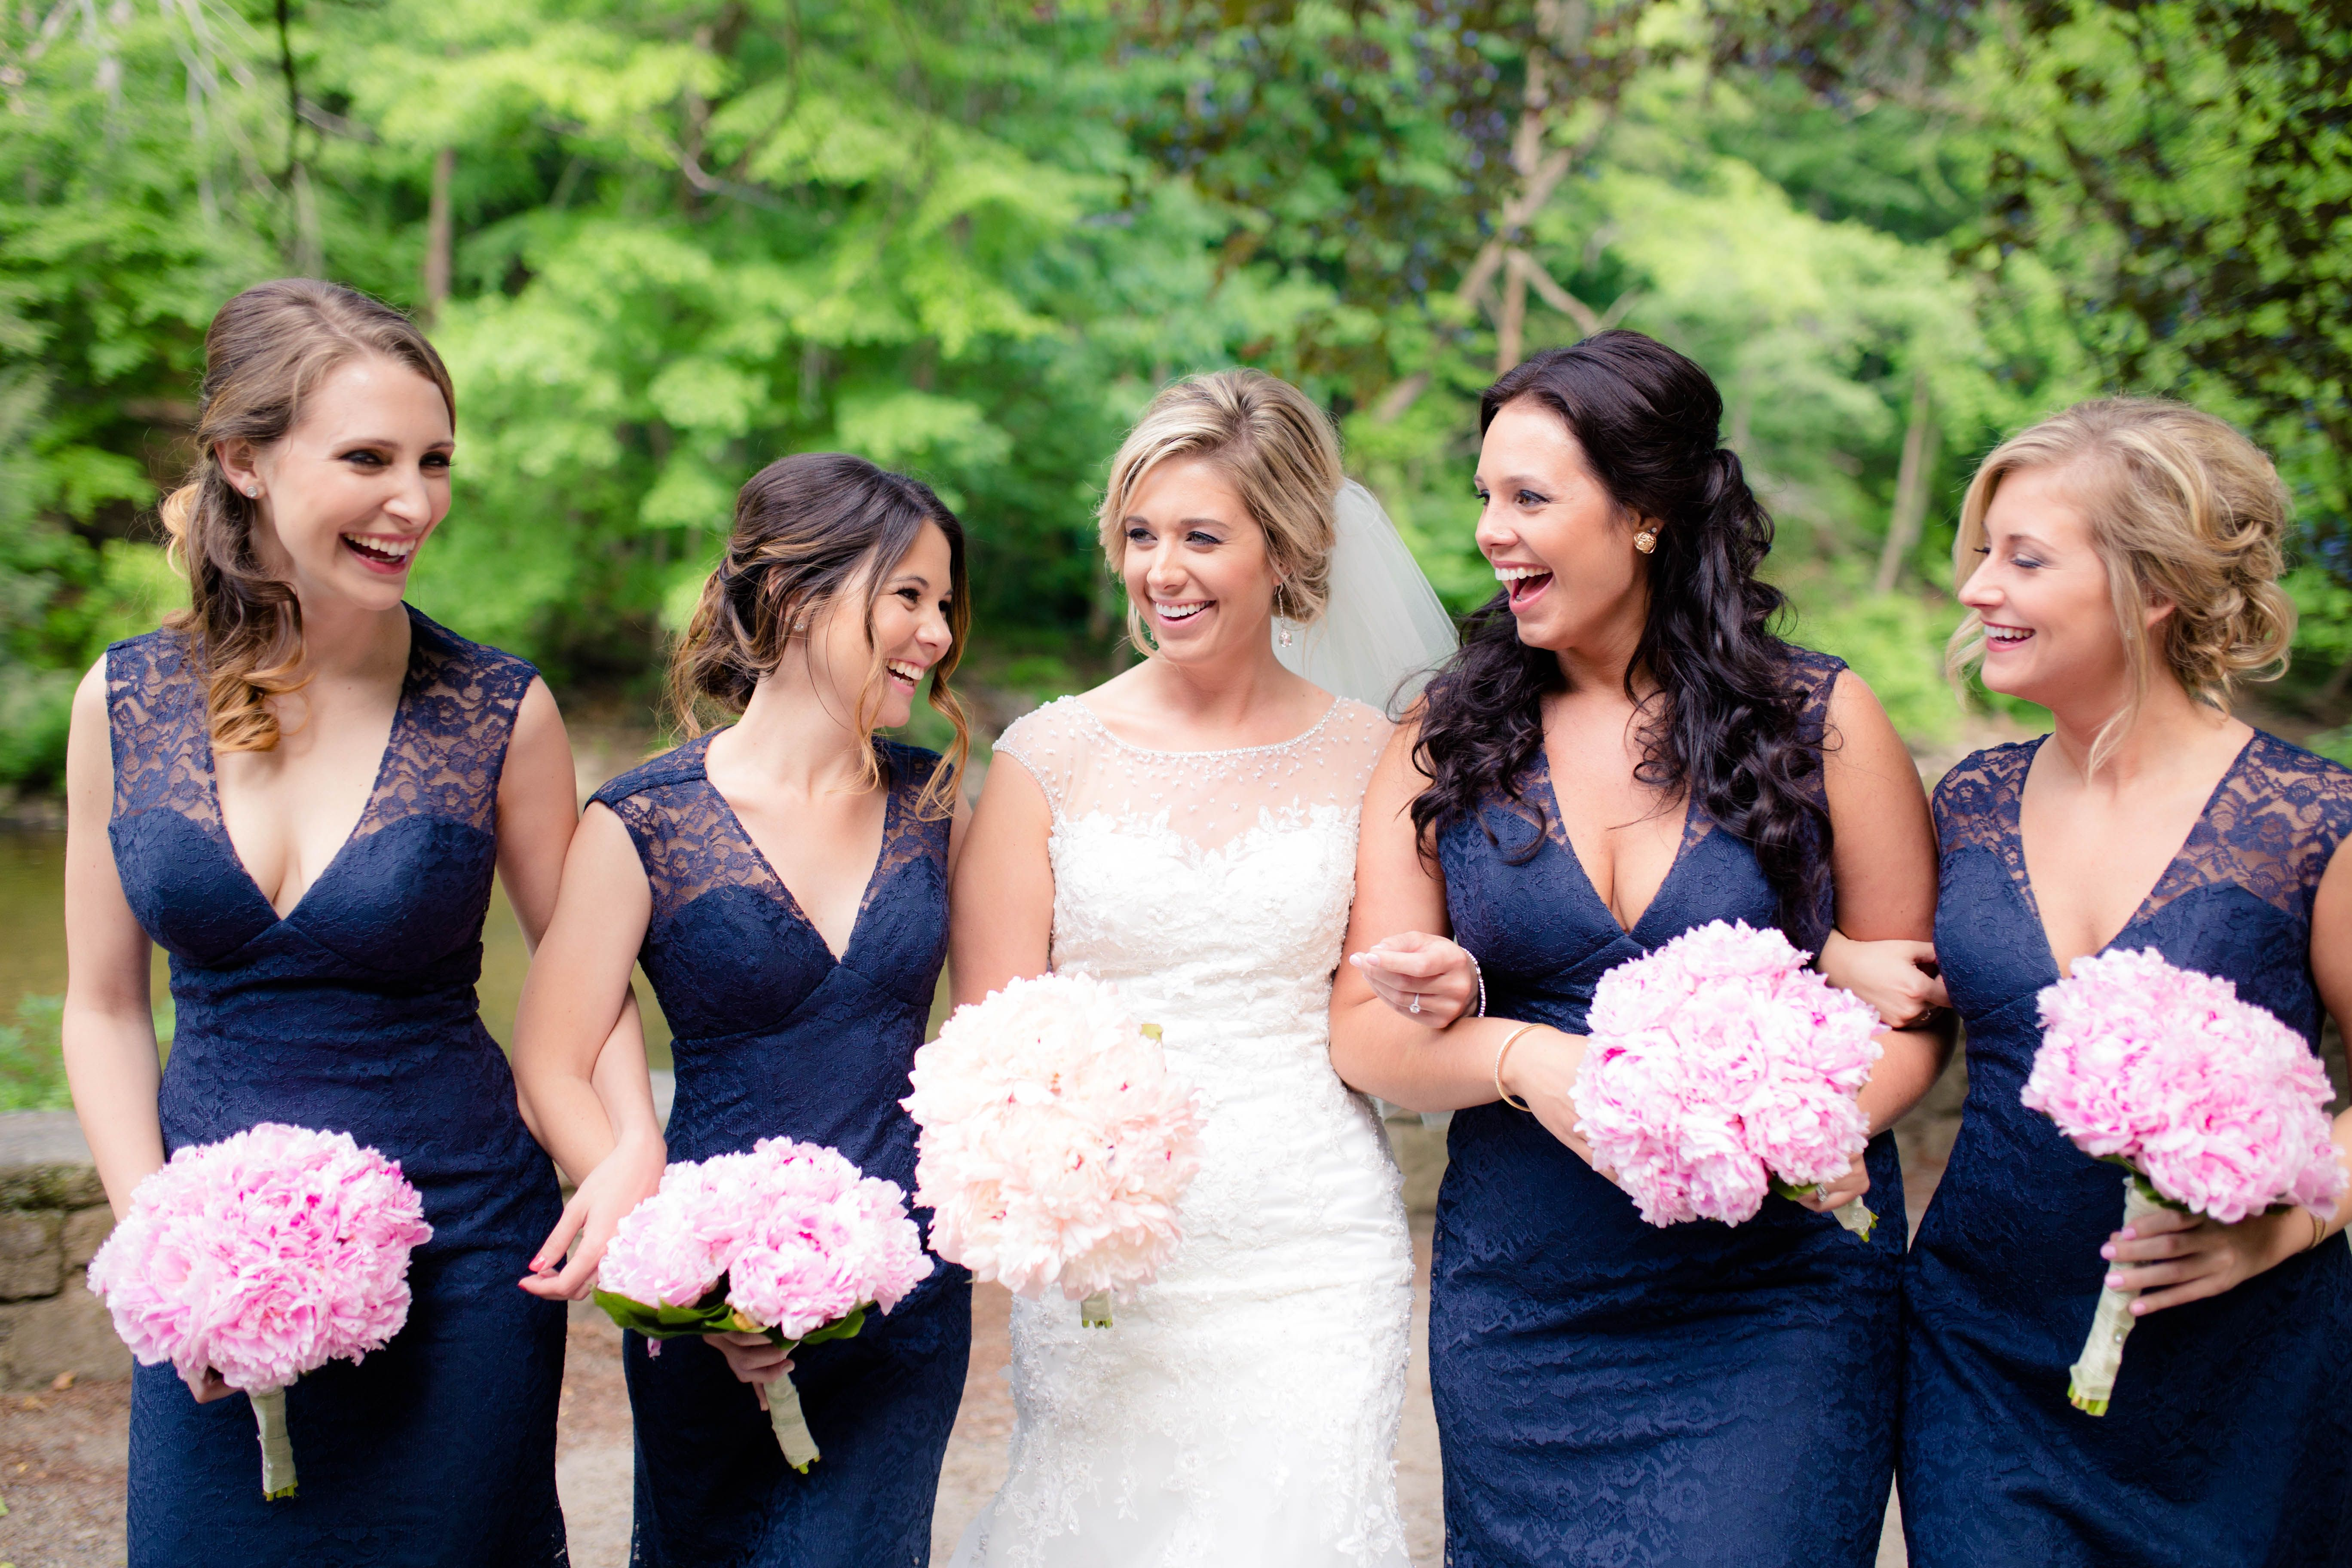 Navy lace bridesmaid dresses and pink peony bouquets bridesmaid navy lace bridesmaid dresses and pink peony bouquets ombrellifo Choice Image